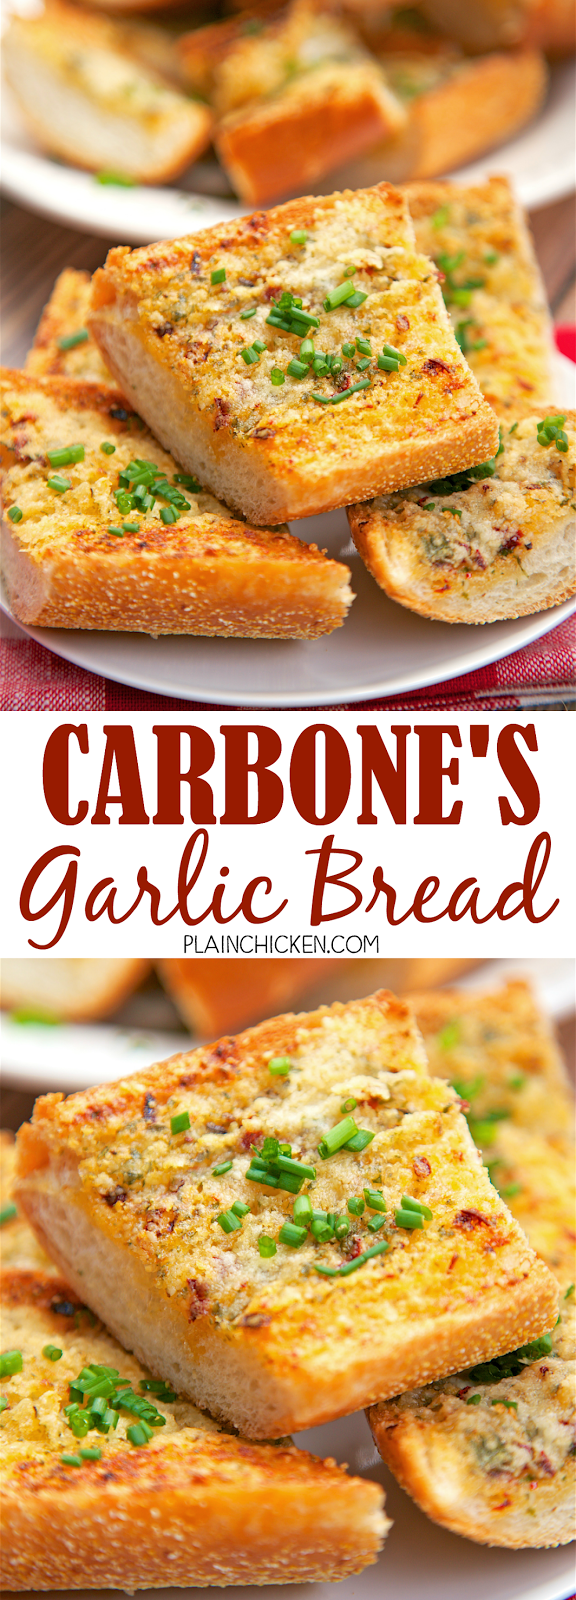 Carbone's Garlic Bread - recipe for the garlic bread from the famous NYC and Vegas restaurant. BEST garlic bread ever! Crispy, cheesy and a little spicy! You can make this ahead of time and refrigerate it until you are ready to bake the bread. I like to bake one half and save the other half for the next day.